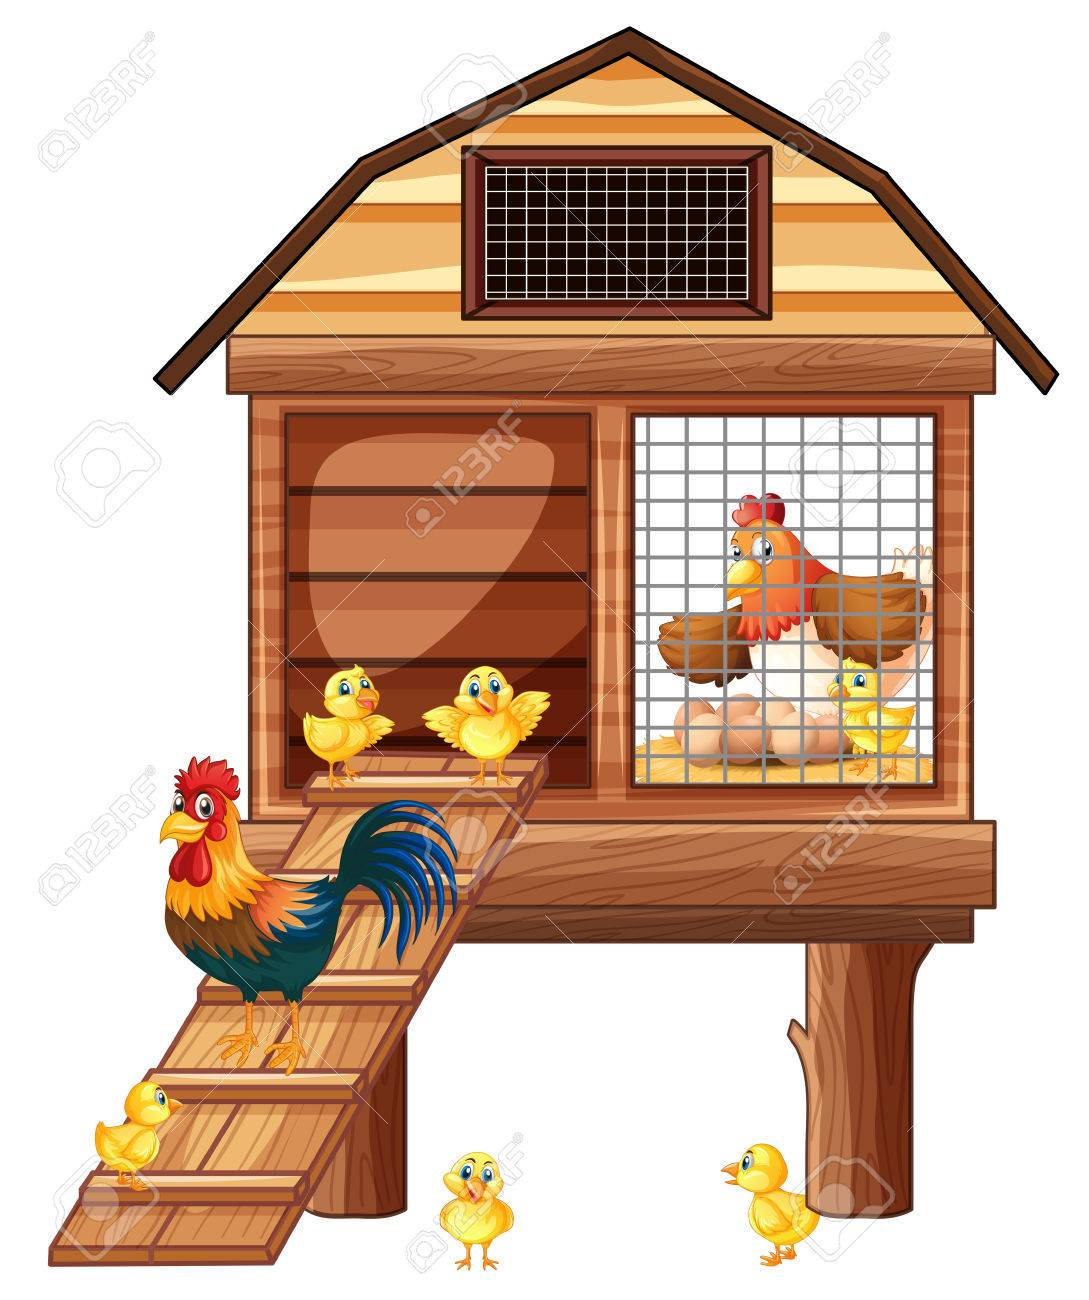 Chicken coop with many chicks illustration.